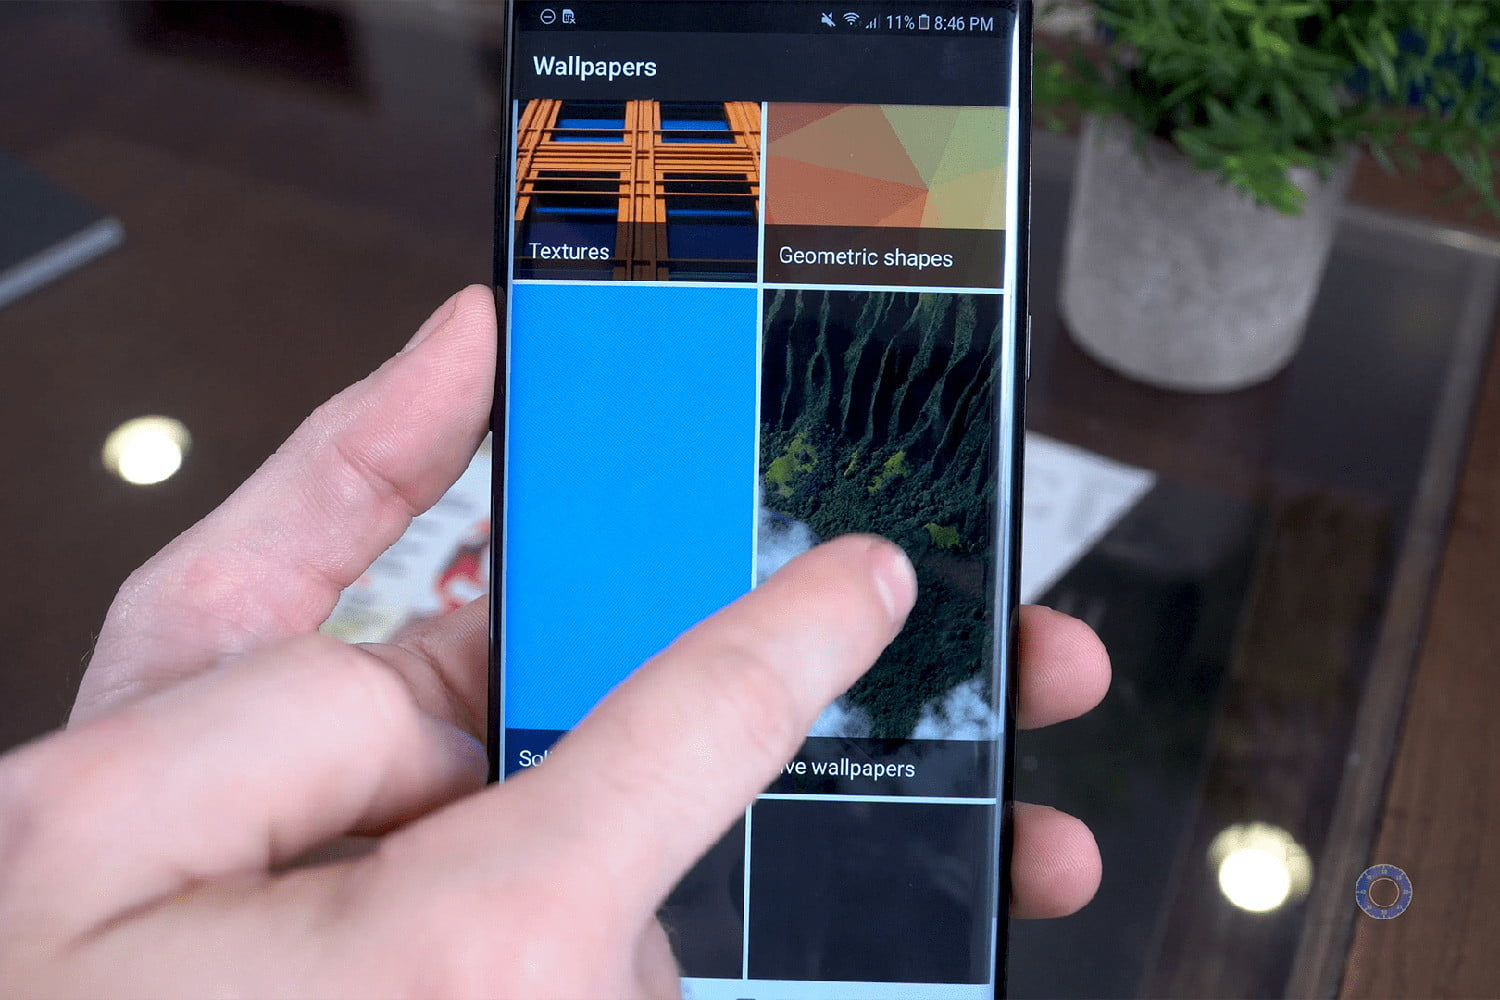 Pixel 3 launcher apk s9 | How to Turn Your Galaxy S9 into a